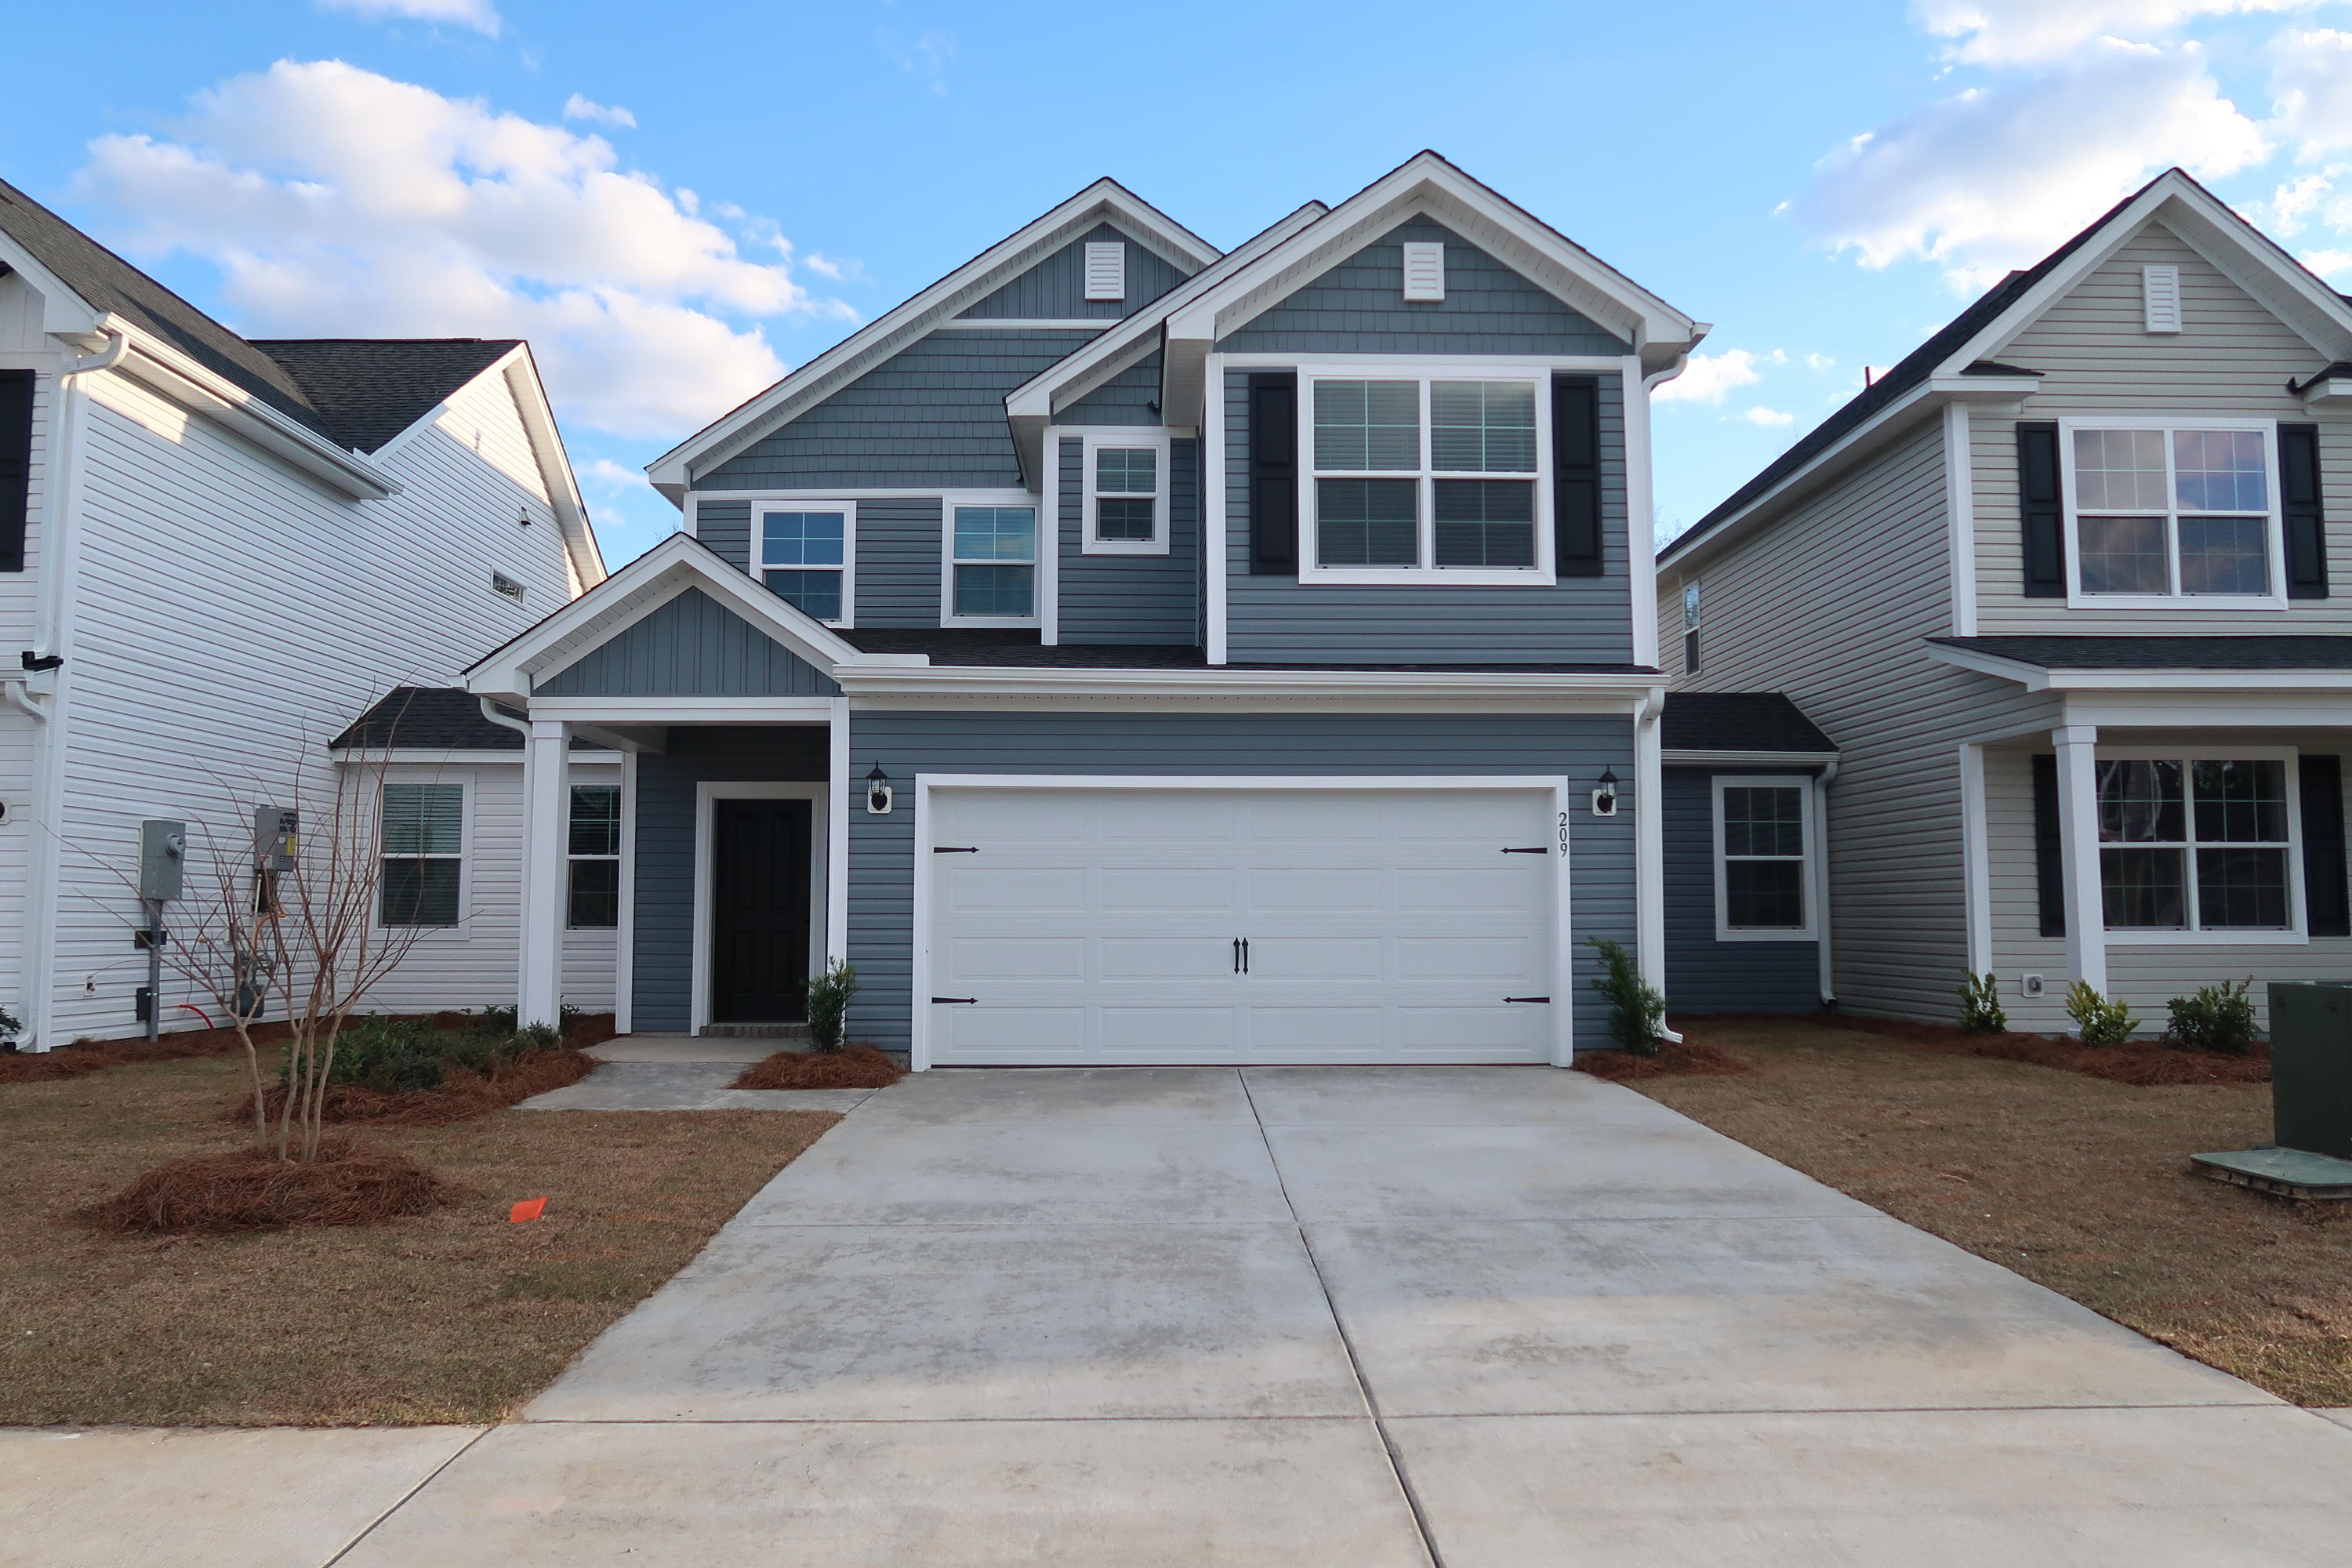 287 McClellan Way Summerville, Sc 29483